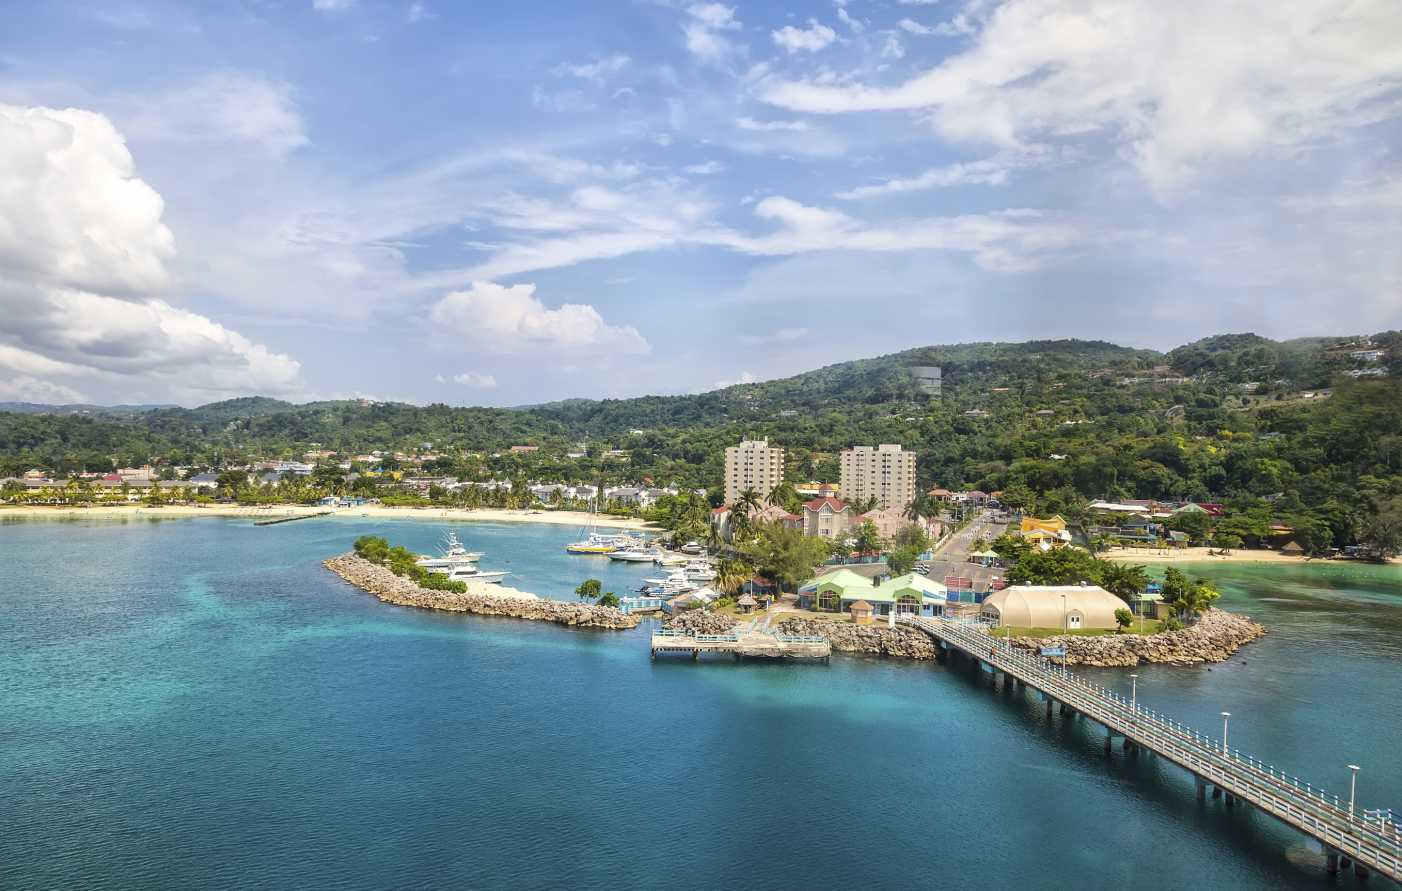 Jamaica, Montego Bay - Up to 5 couples will enjoy a week in the 5 thousand sq. ft., 5-bedroom, Datura Villa located on 9 acres of private property overlooking the aquamarine waters below. Comes with a private chef and full staff to meet your every need.Donor ~ Evan Cole